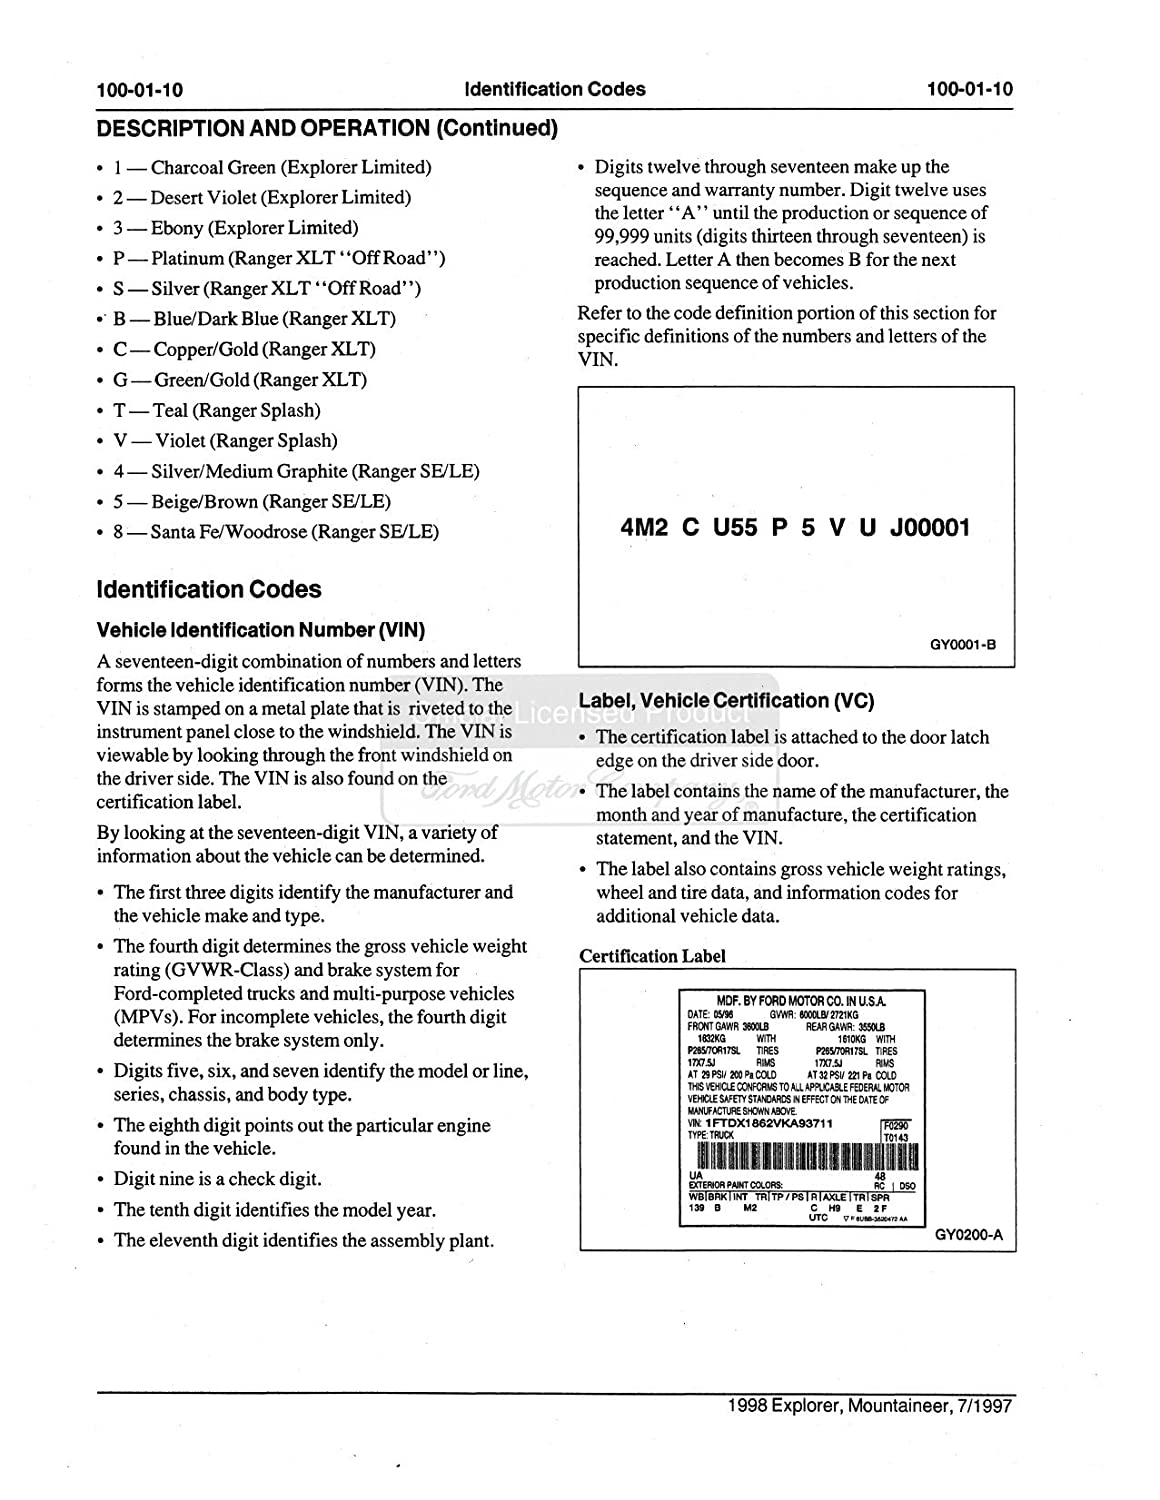 1998 Ford Explorer Mountaineer Shop Service Repair 98 Wiring Diagram Manual Cd Engine Electrical Automotive